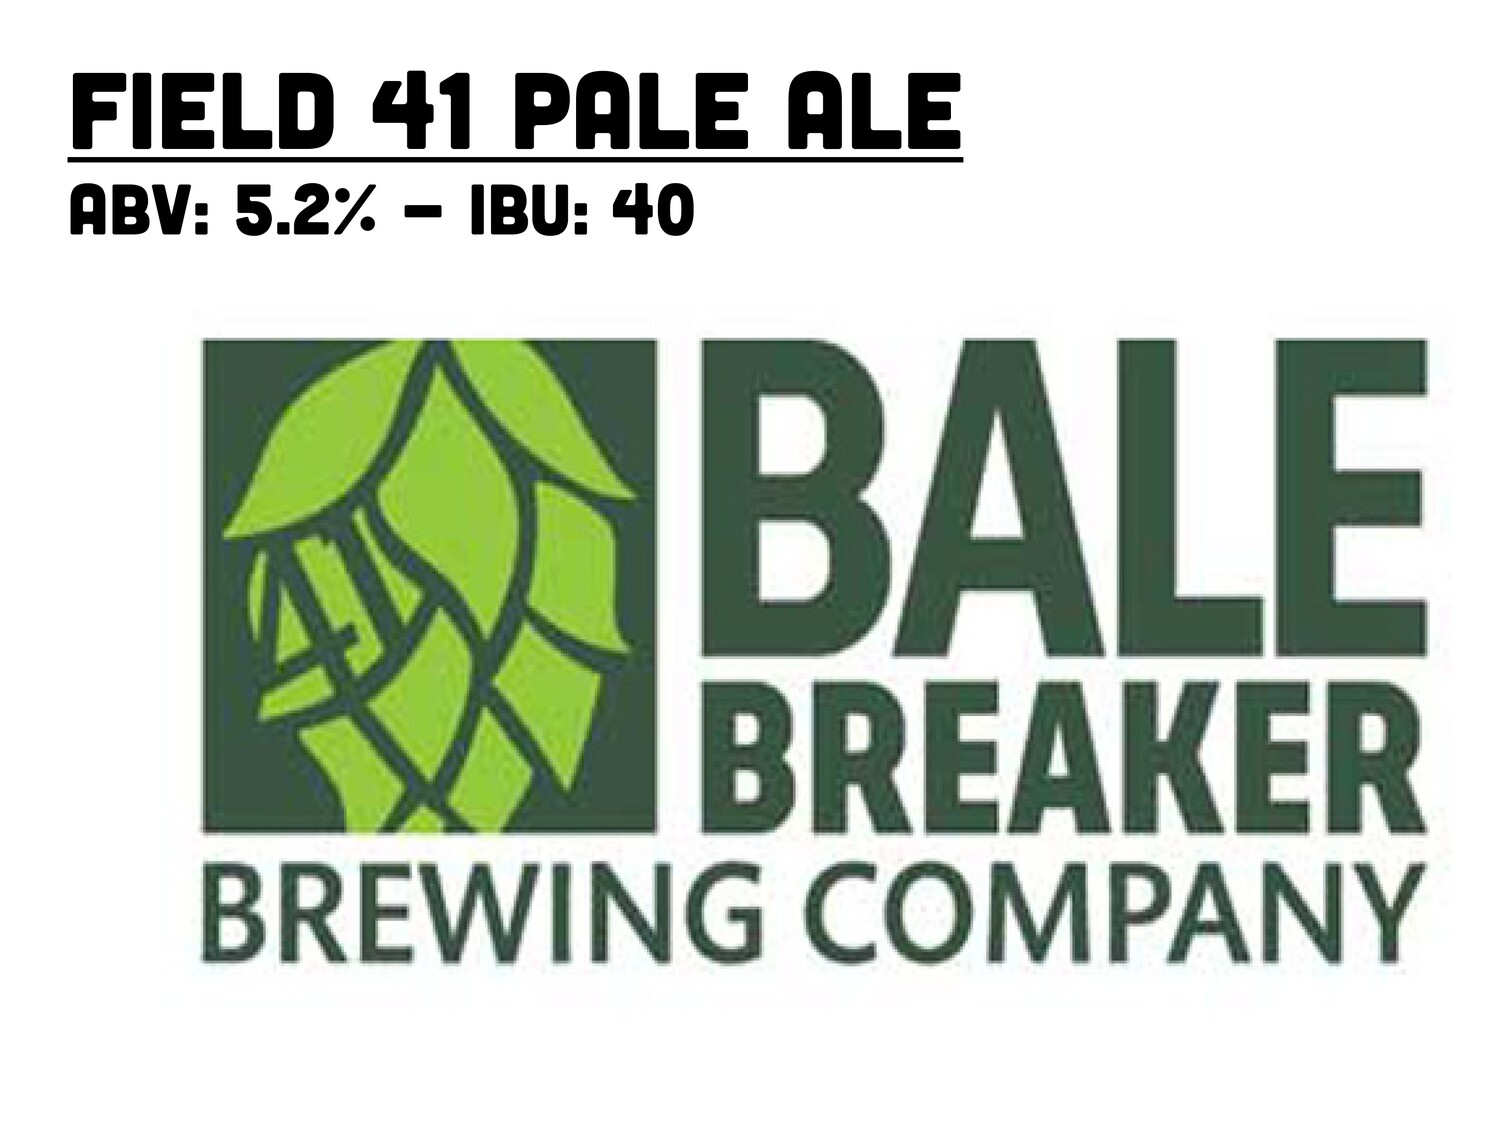 BALE BREAKER FIELD 41 PALE ALE